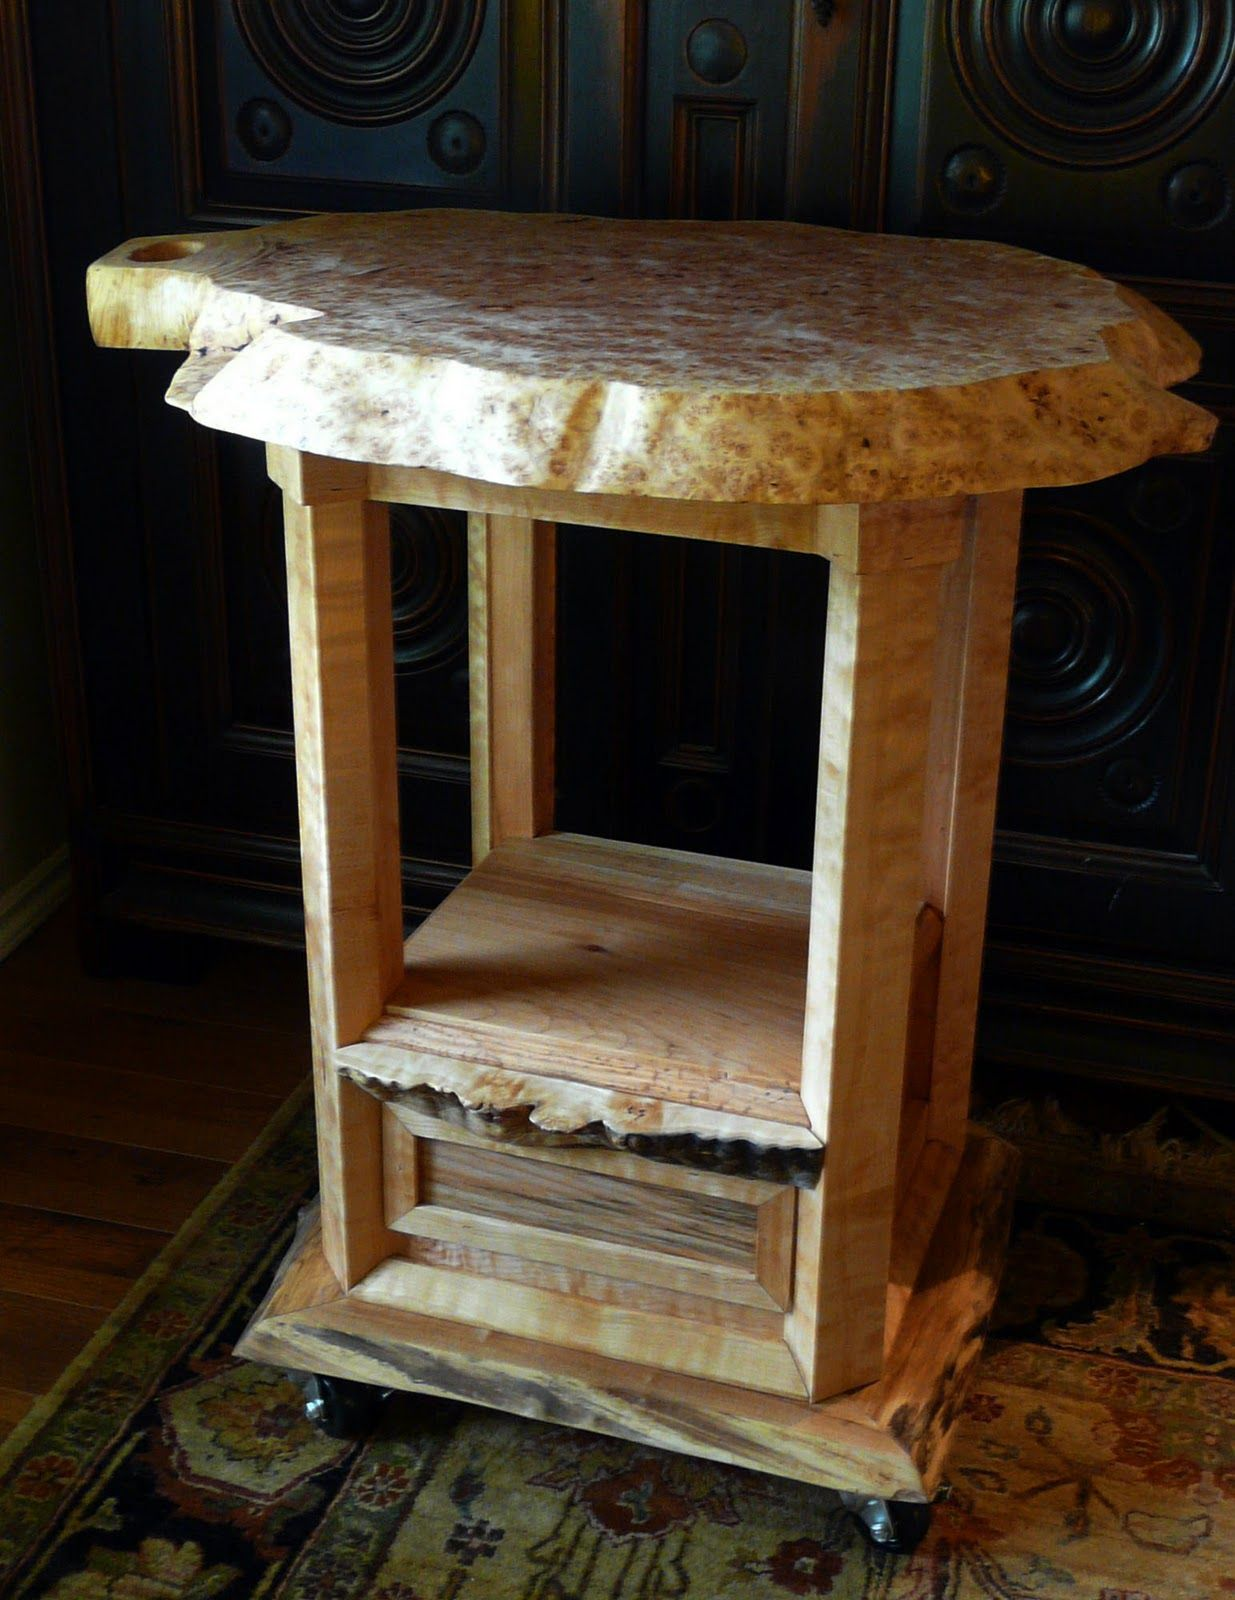 Furniture Custom DIY Rustic Round Butcher Block Island Wheel